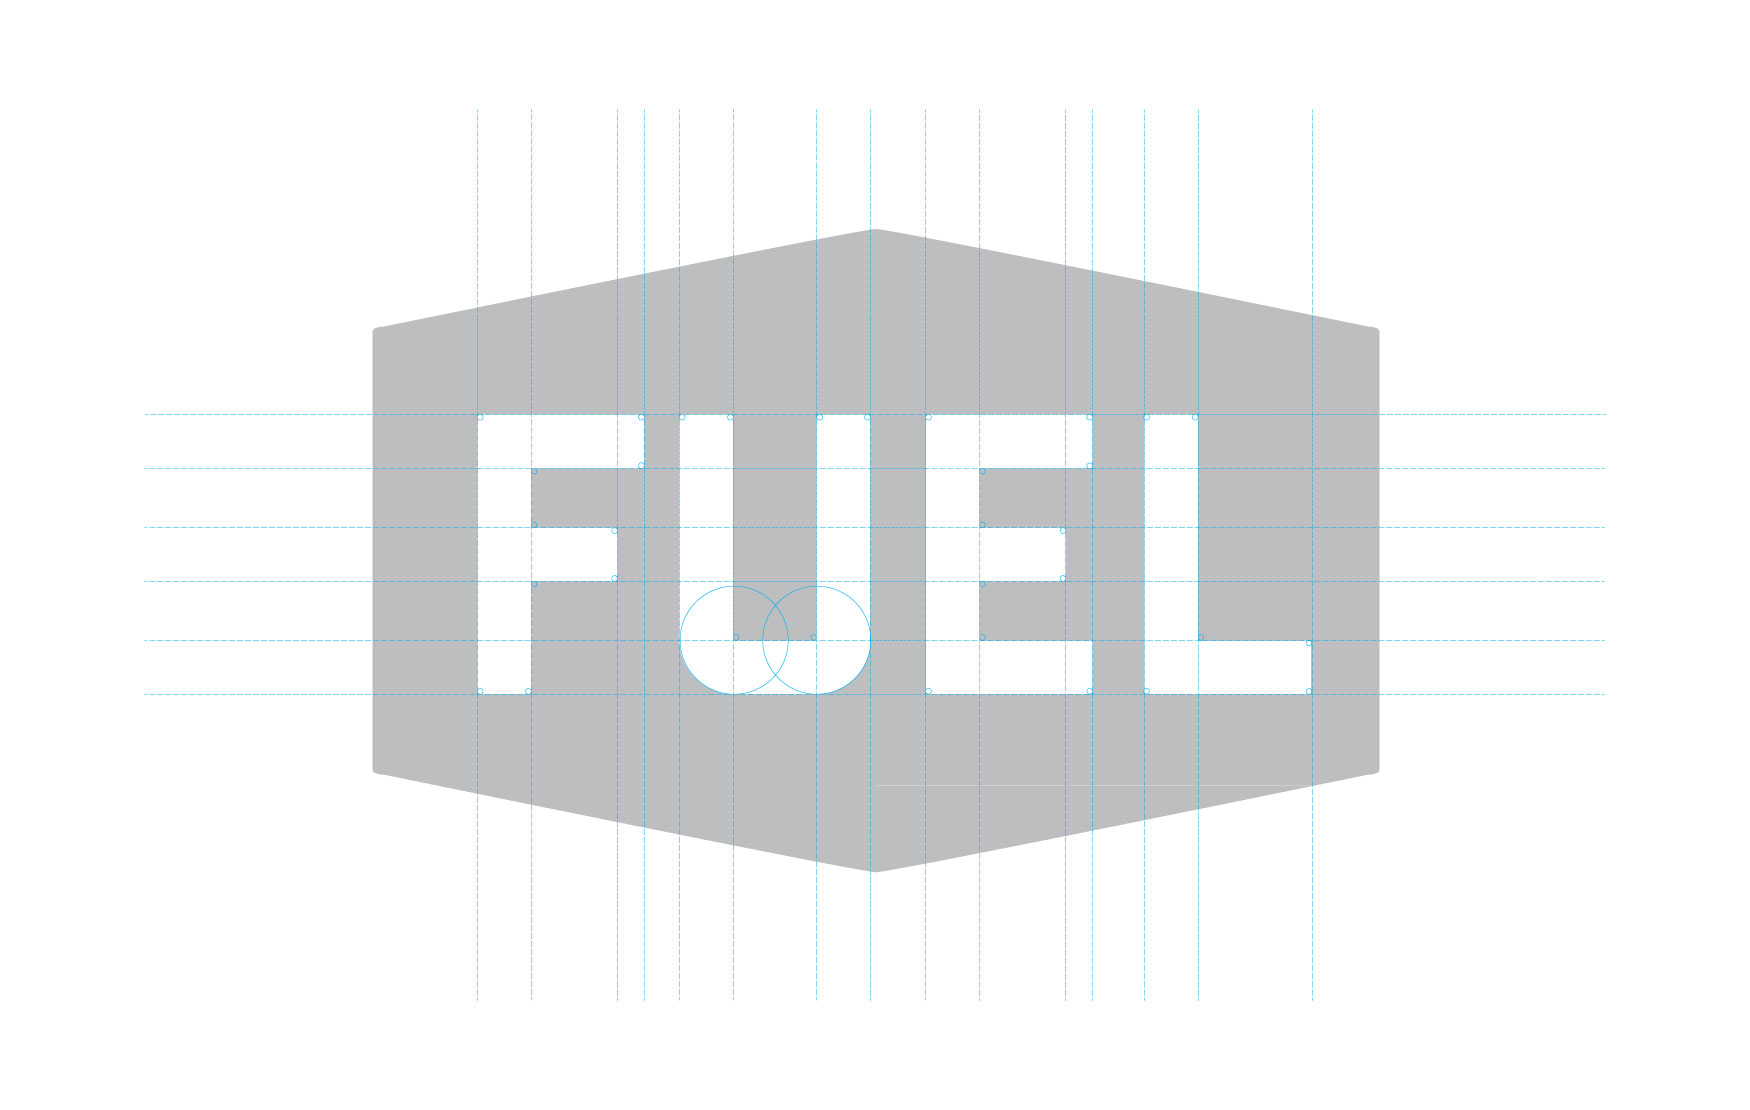 fuel land development co identity rain visual strategy design